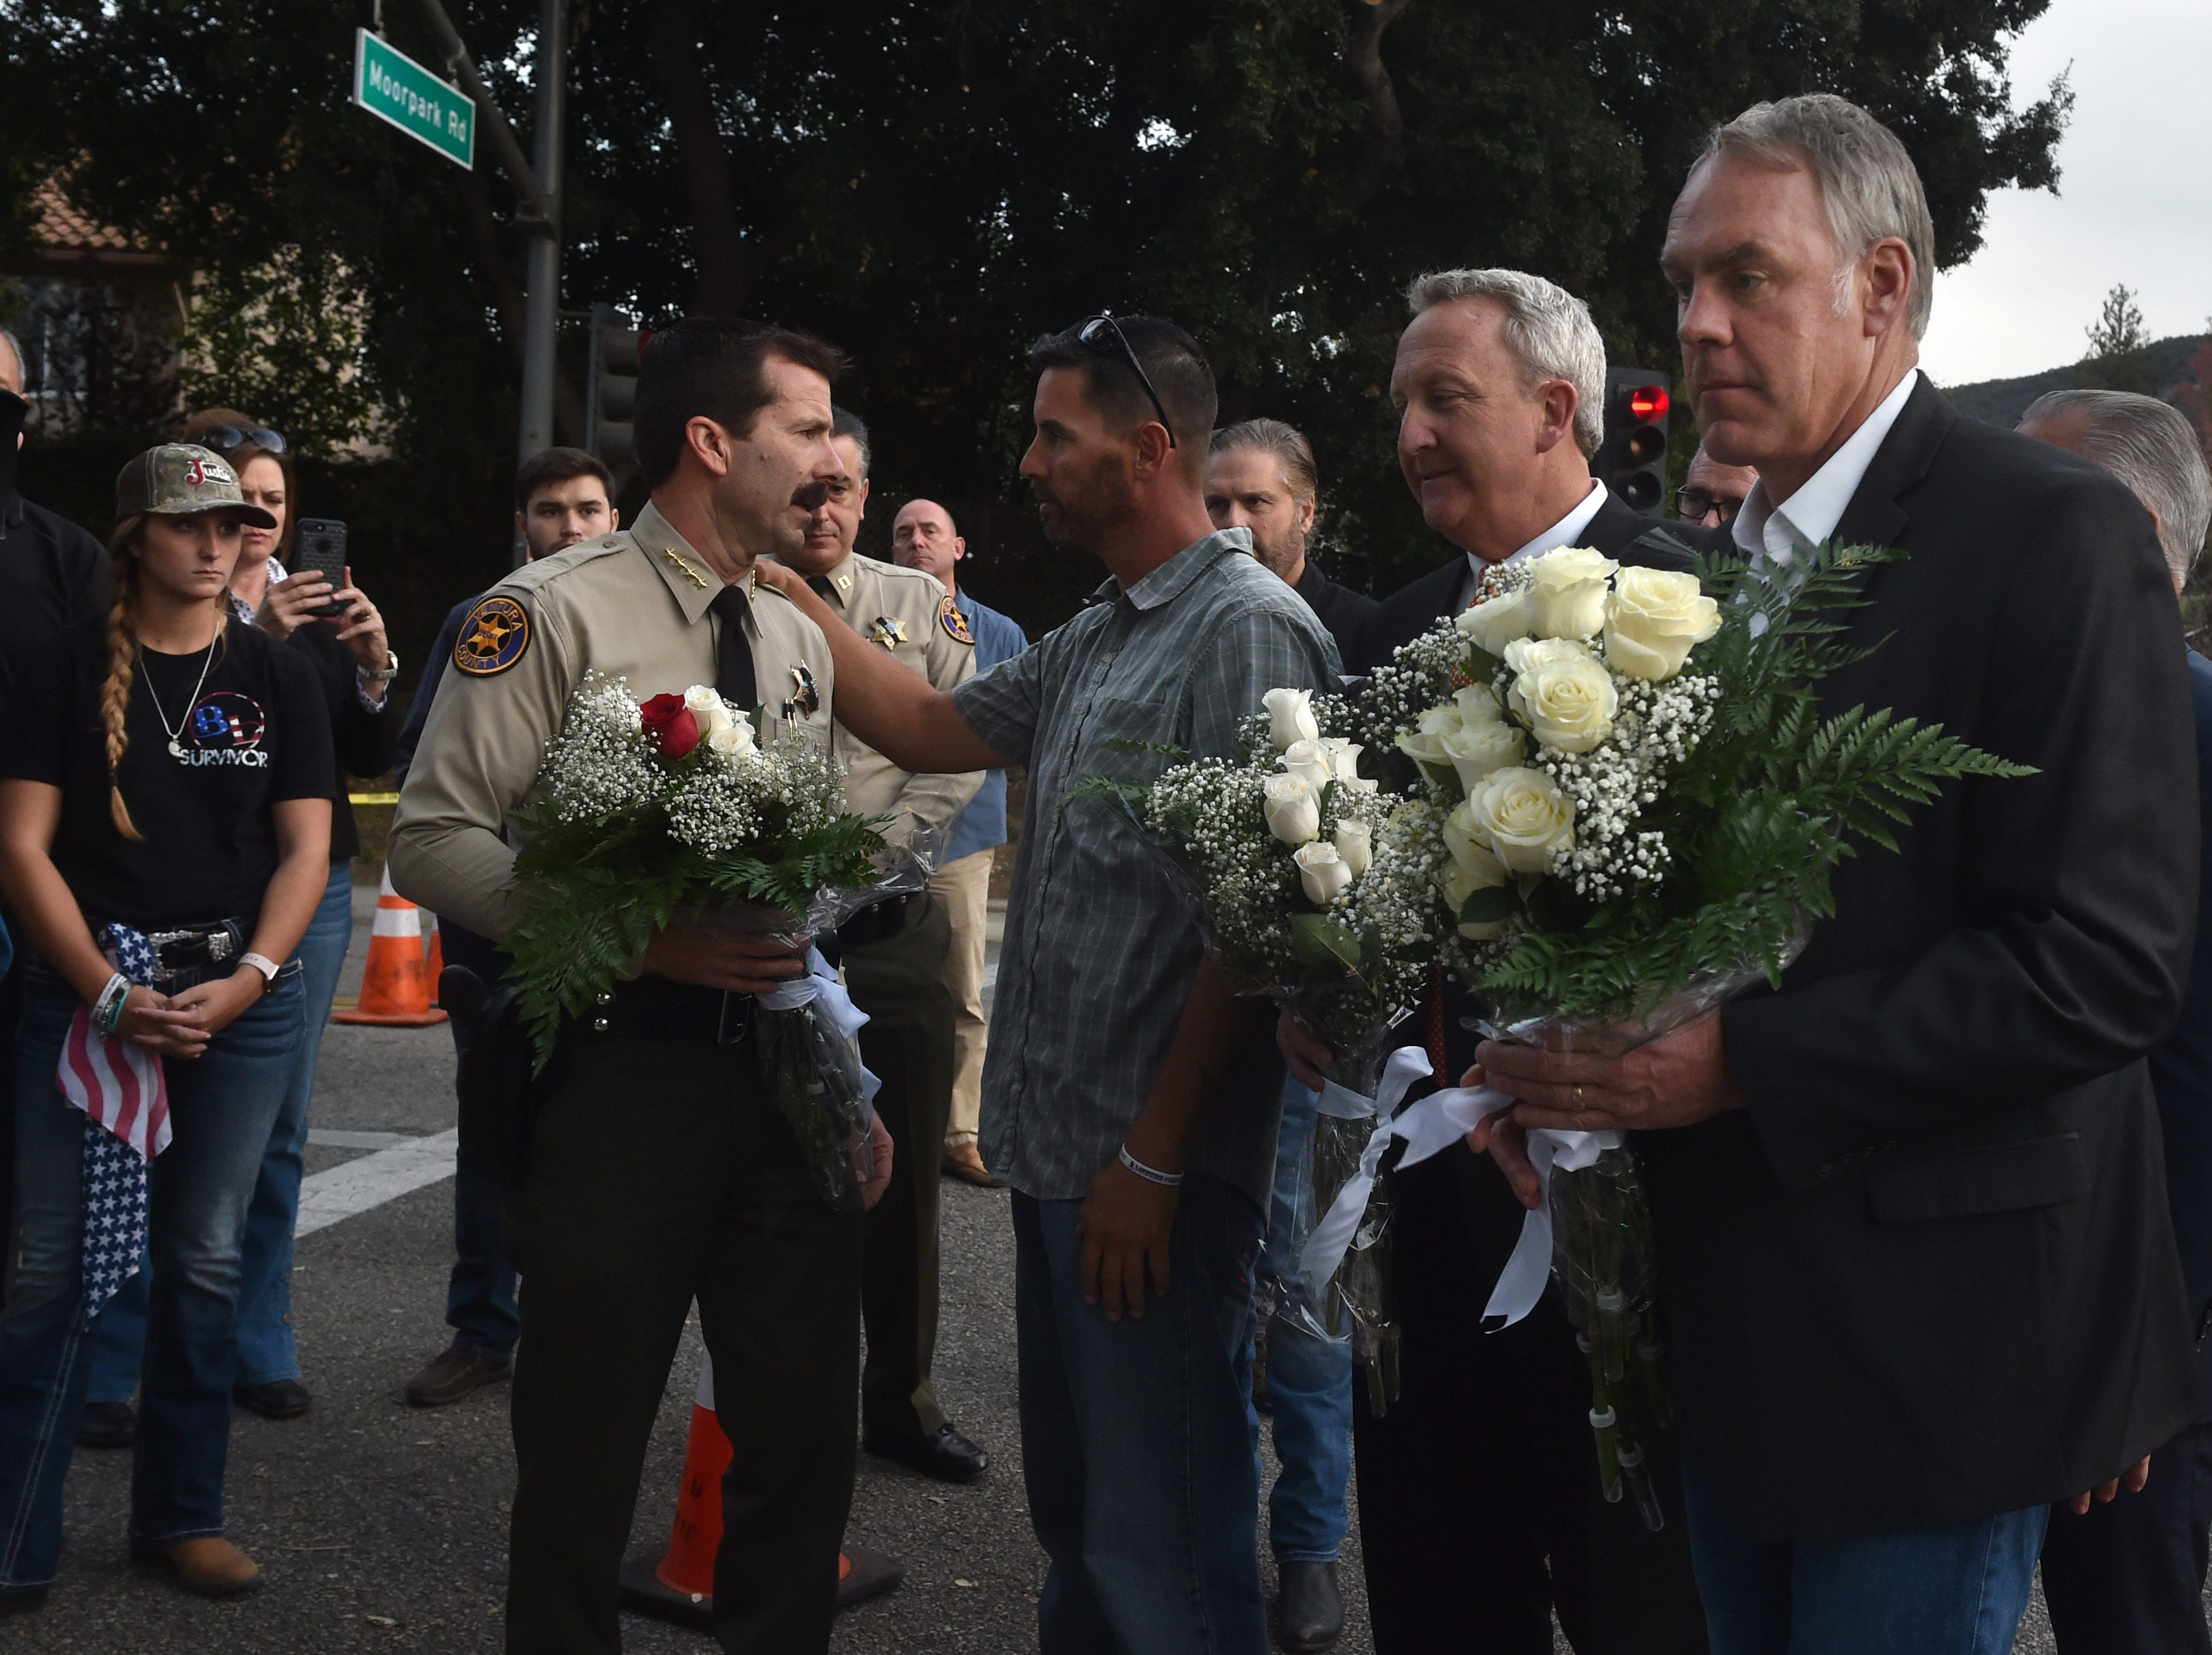 U.S. Interior Secretary Ryan Zinke, right, and Ventura County Sheriff Bill Ayub deliver flowers Thursday to a memorial wall near the Borderline Bar & Grill in Thousand Oaks, where 12 people were killed by a gunman who then turned the gun on himself Nov. 7. Zinke was in Ventura County to see the damage caused by the Woolsey and Hill fires, which started the day after the shootings. His visit coincided with the funeral of sheriff's Sgt. Ron Helus, one one those killed by the gunman.